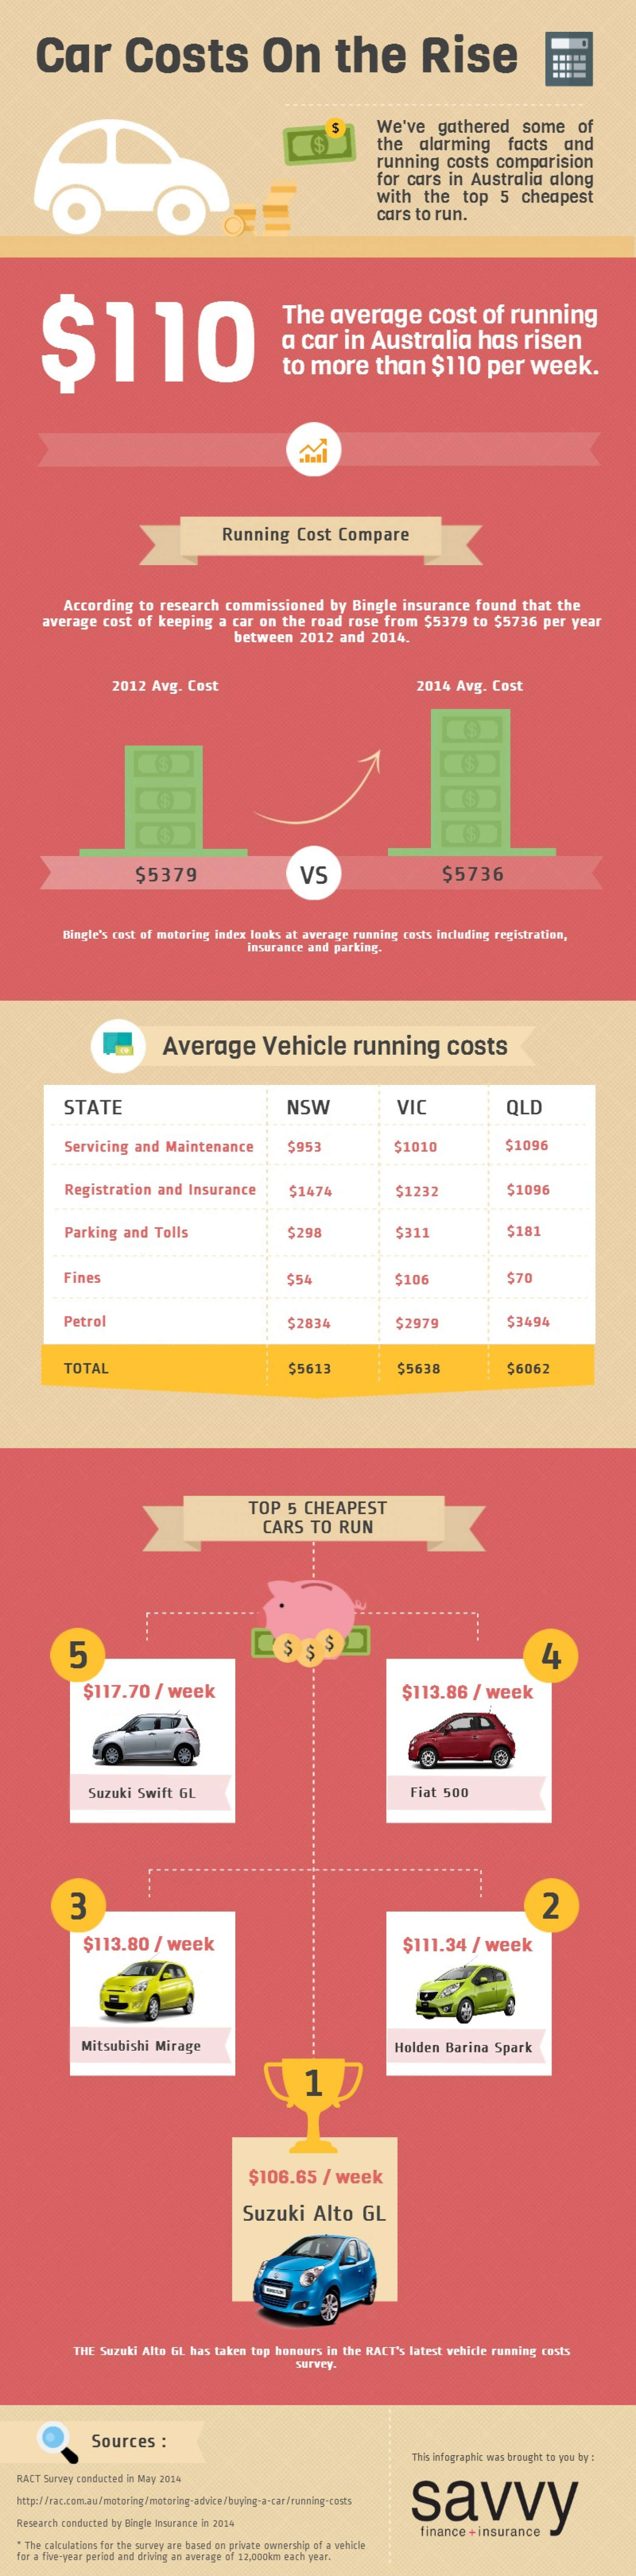 Car Costs on the Rise Infographic